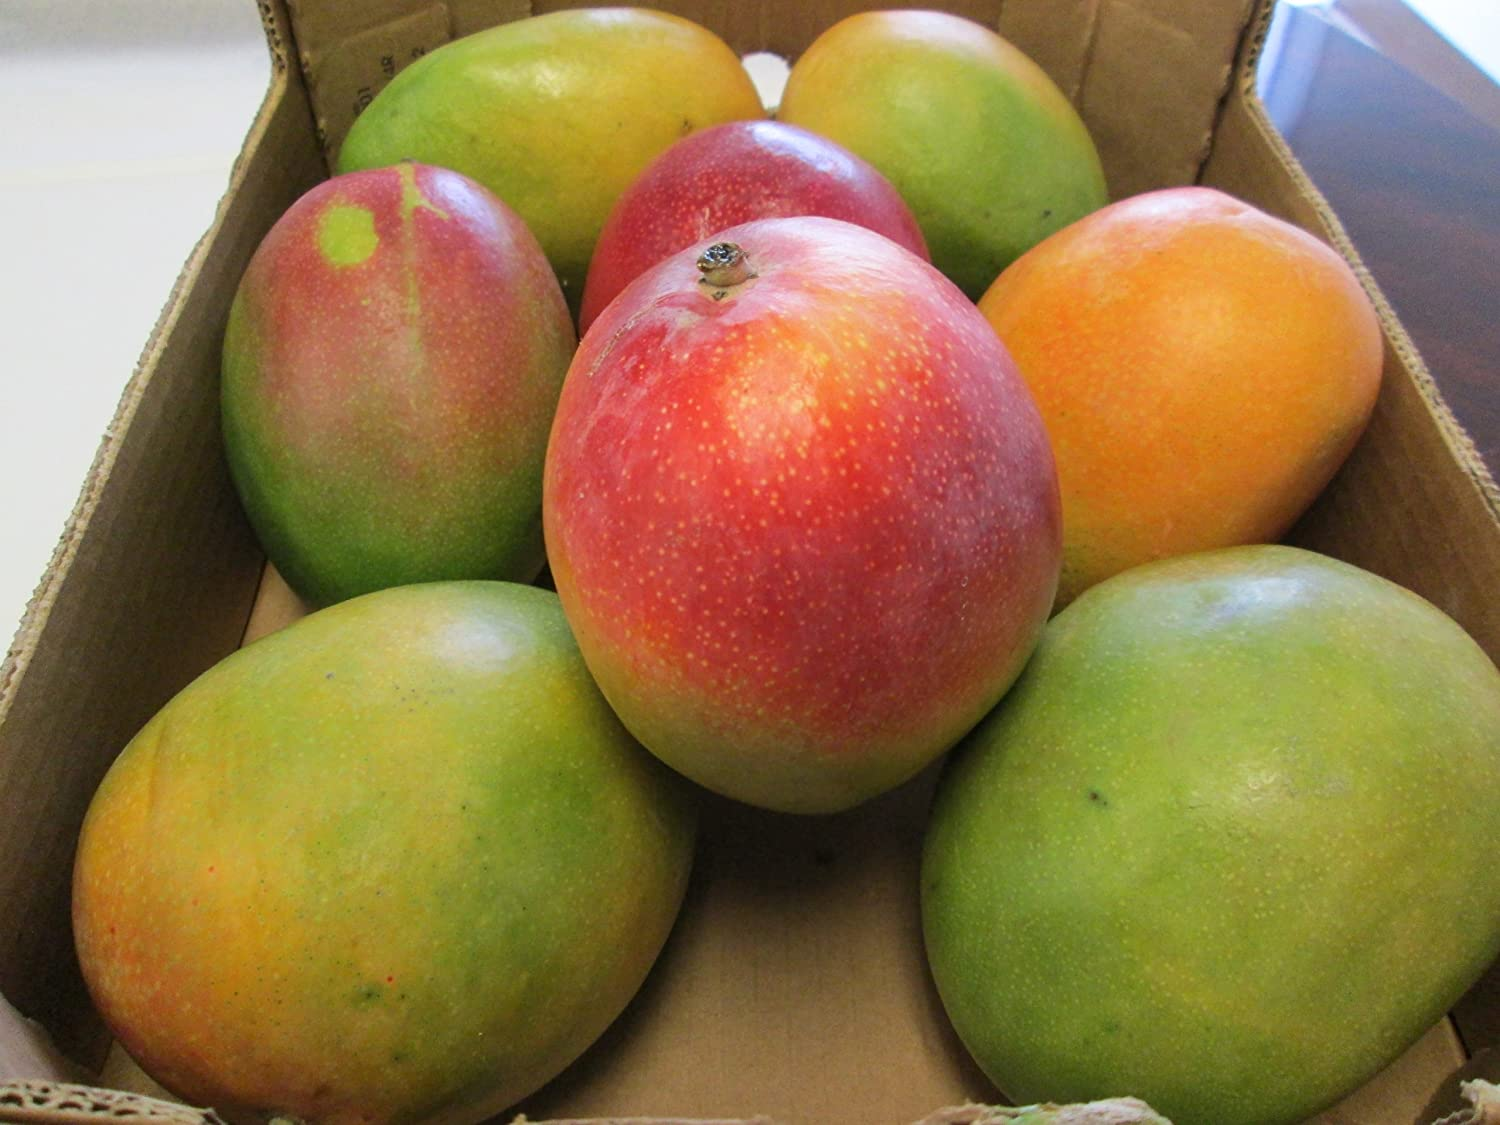 8 Selected Sweet and Juicy Fresh Large Mango Fruit - 9 Lb Pounds